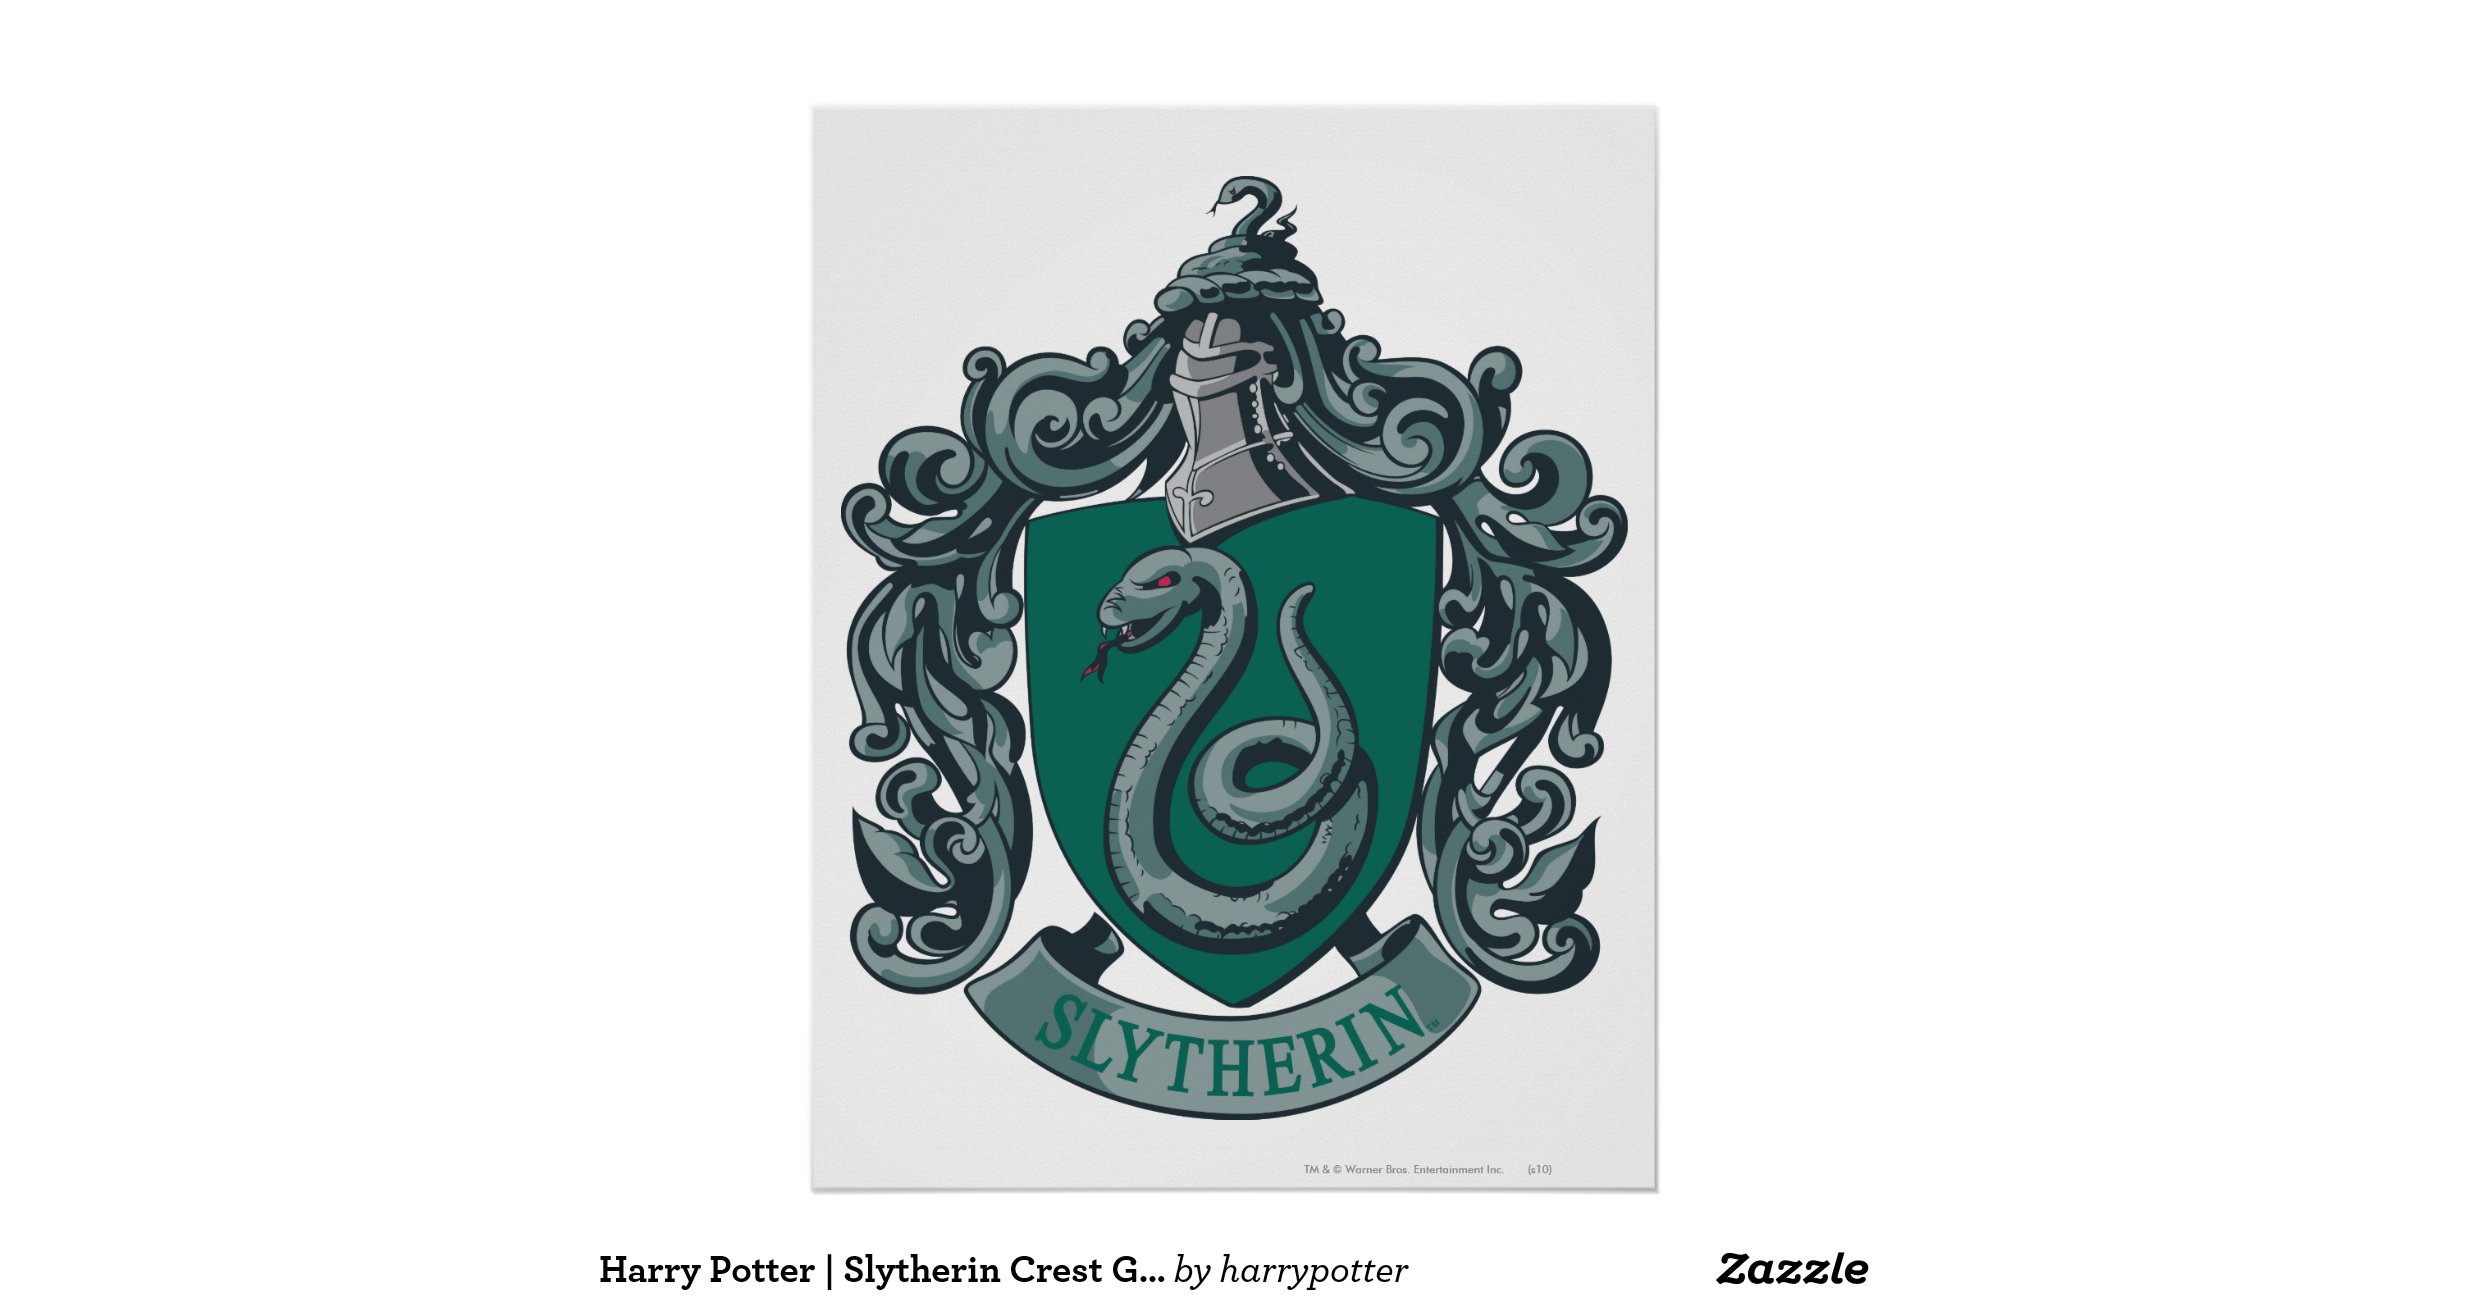 slytherin_crest_green_poster ...